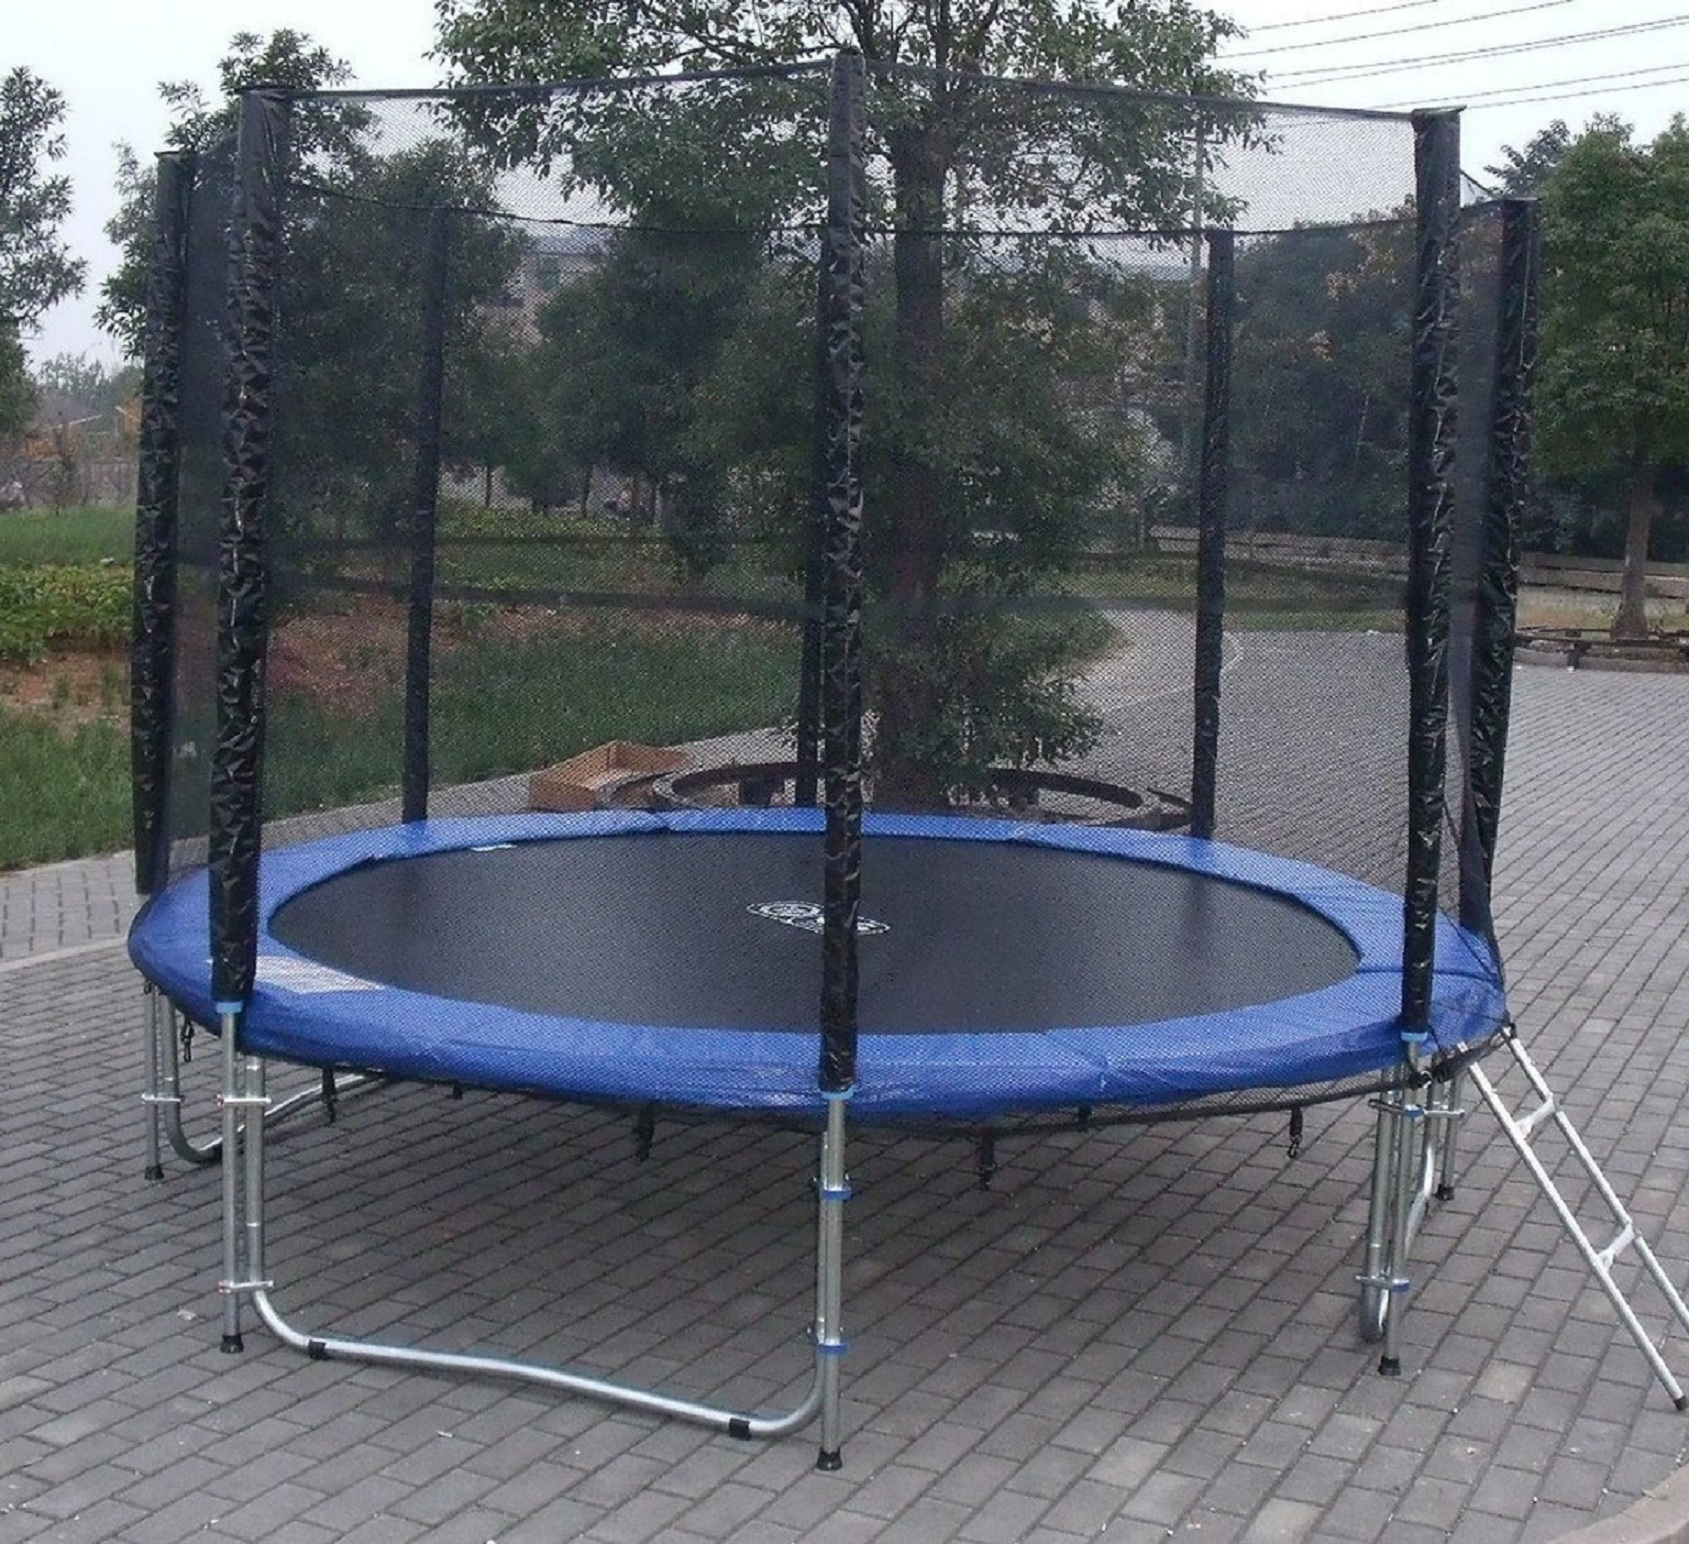 New 14ft Trampoline Combo Bounce Jump Safety Enclosure Net: EXACME 10 FT Trampoline W/ Safety Pad & Enclosure Net ALL